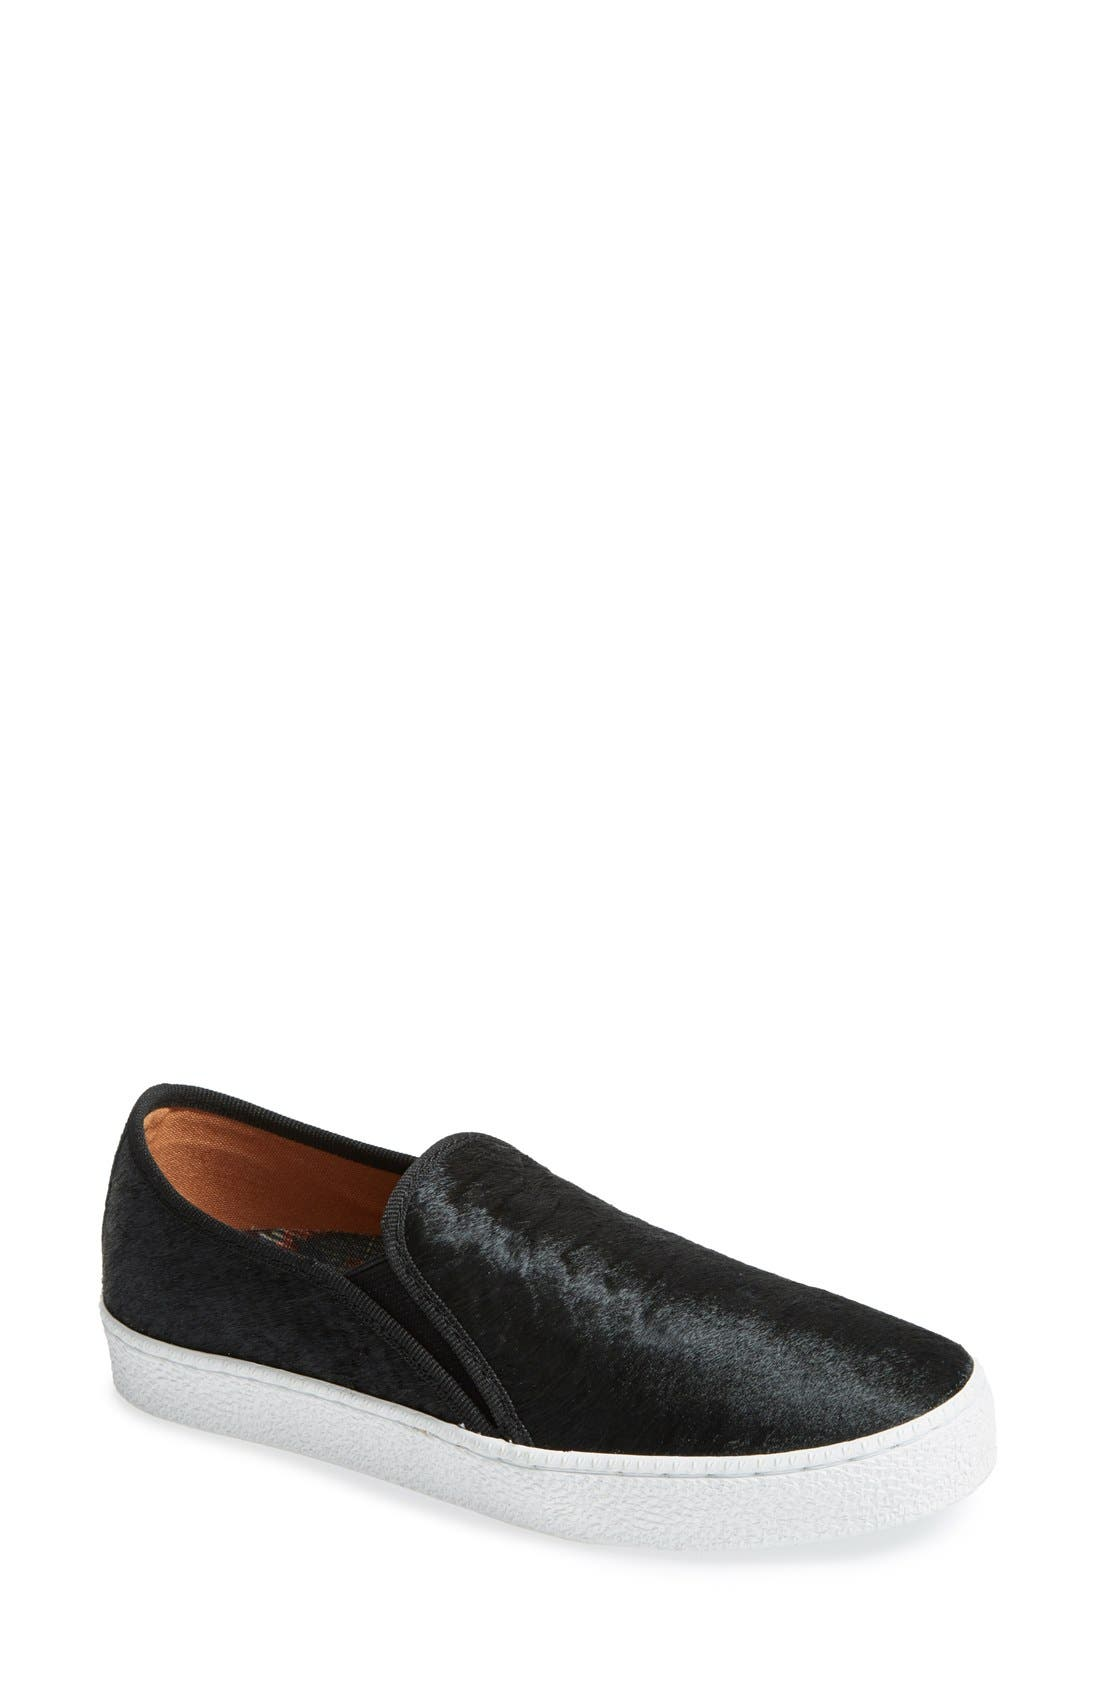 'Duffy' Slip-On Sneaker,                         Main,                         color, 001